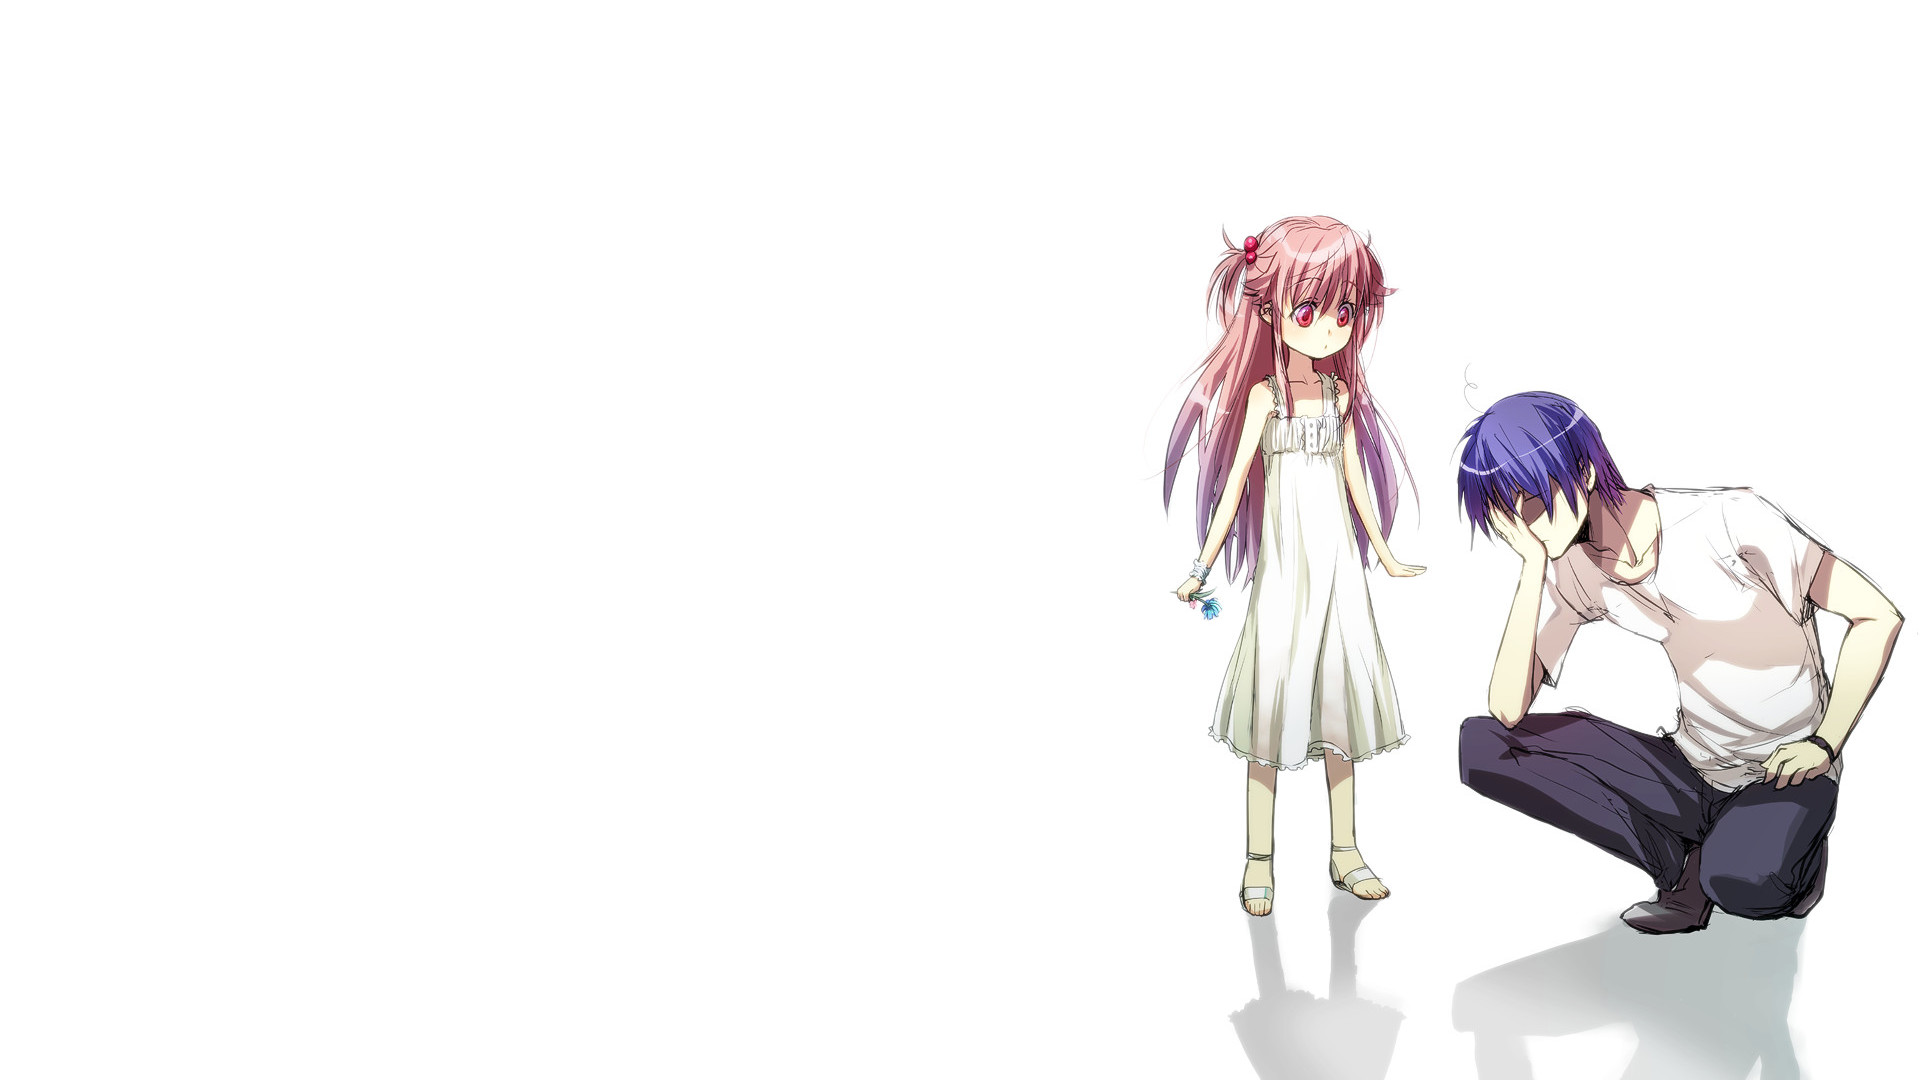 Angel beats full hd wallpaper and background image 1920x1080 yui angel beats hinata hideki wallpaper voltagebd Gallery